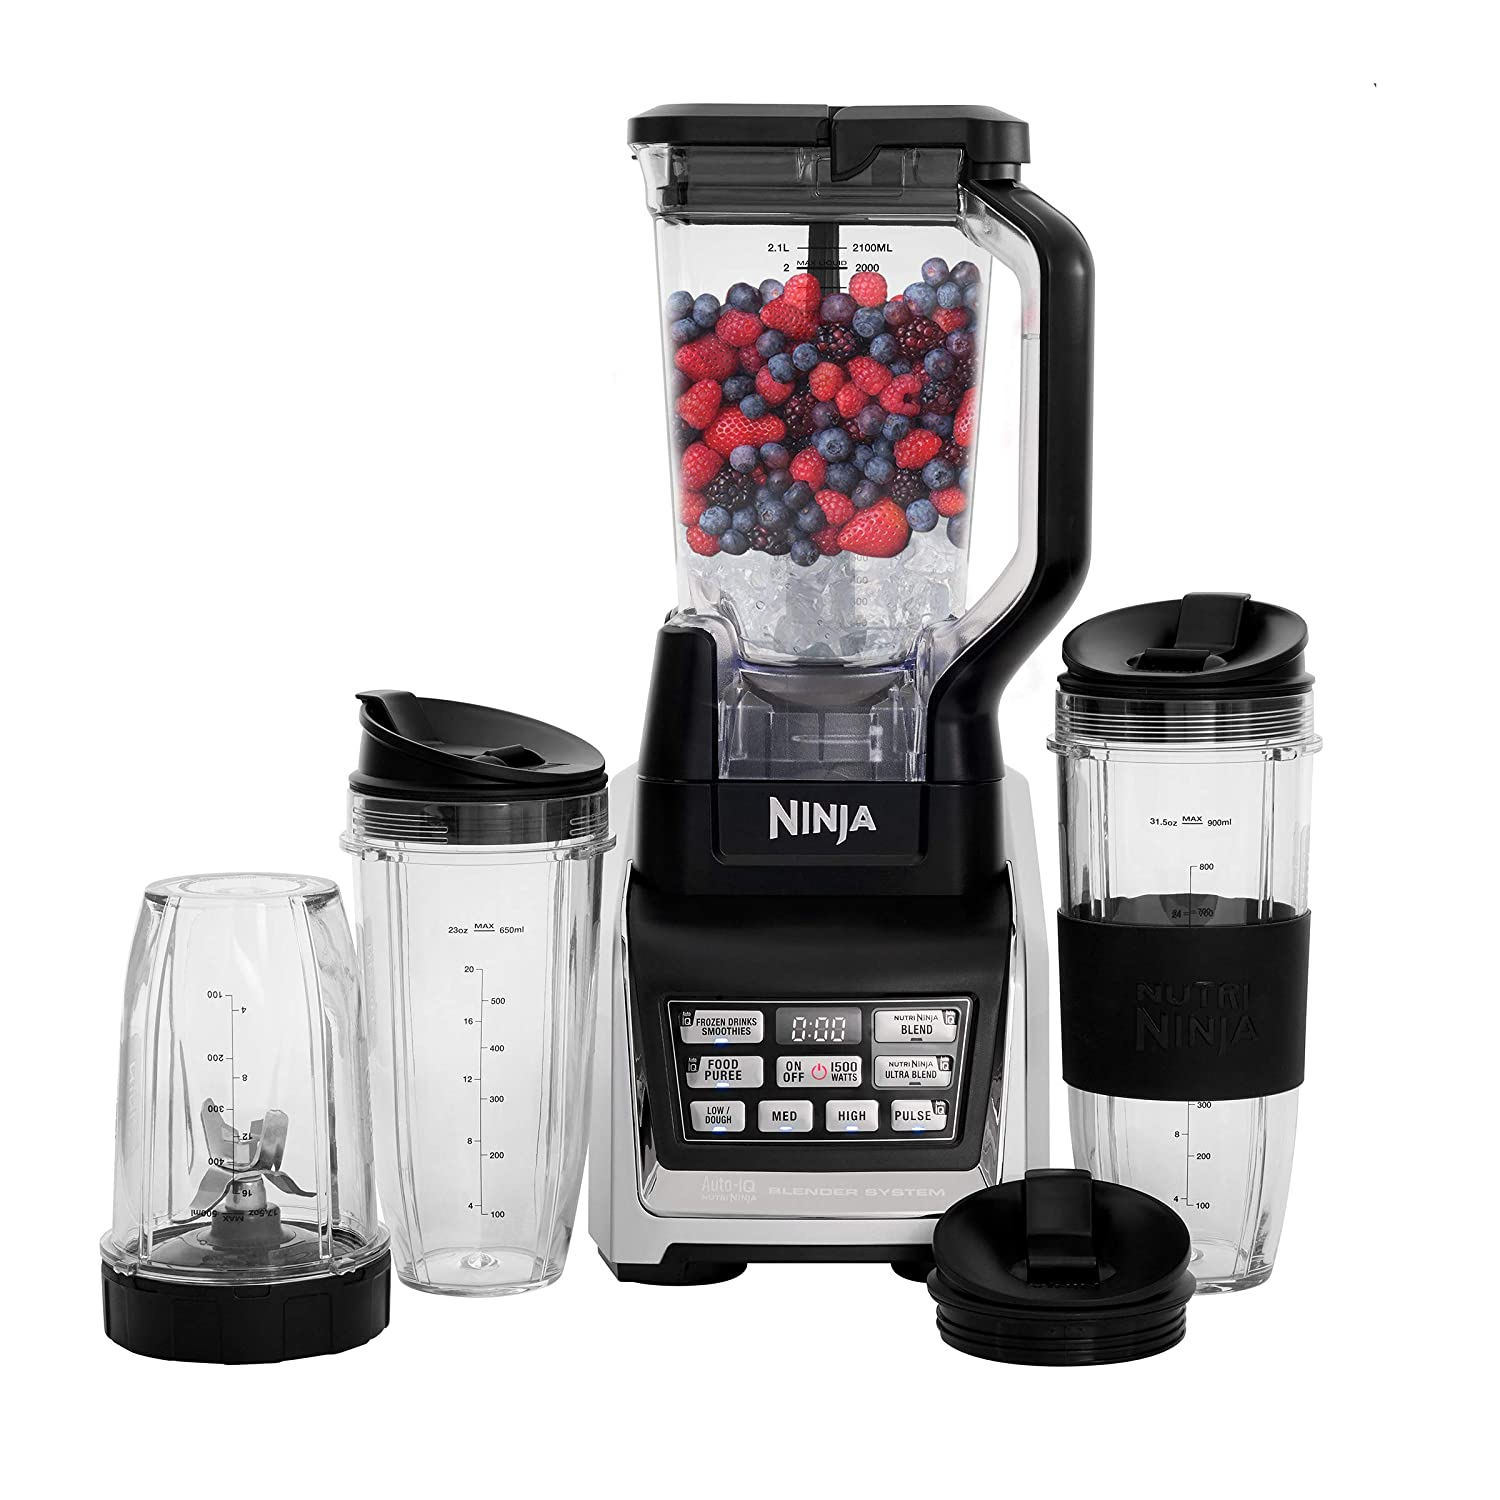 Top 10 Best Blender for Smoothies with Ice - Buyer's Guide 4